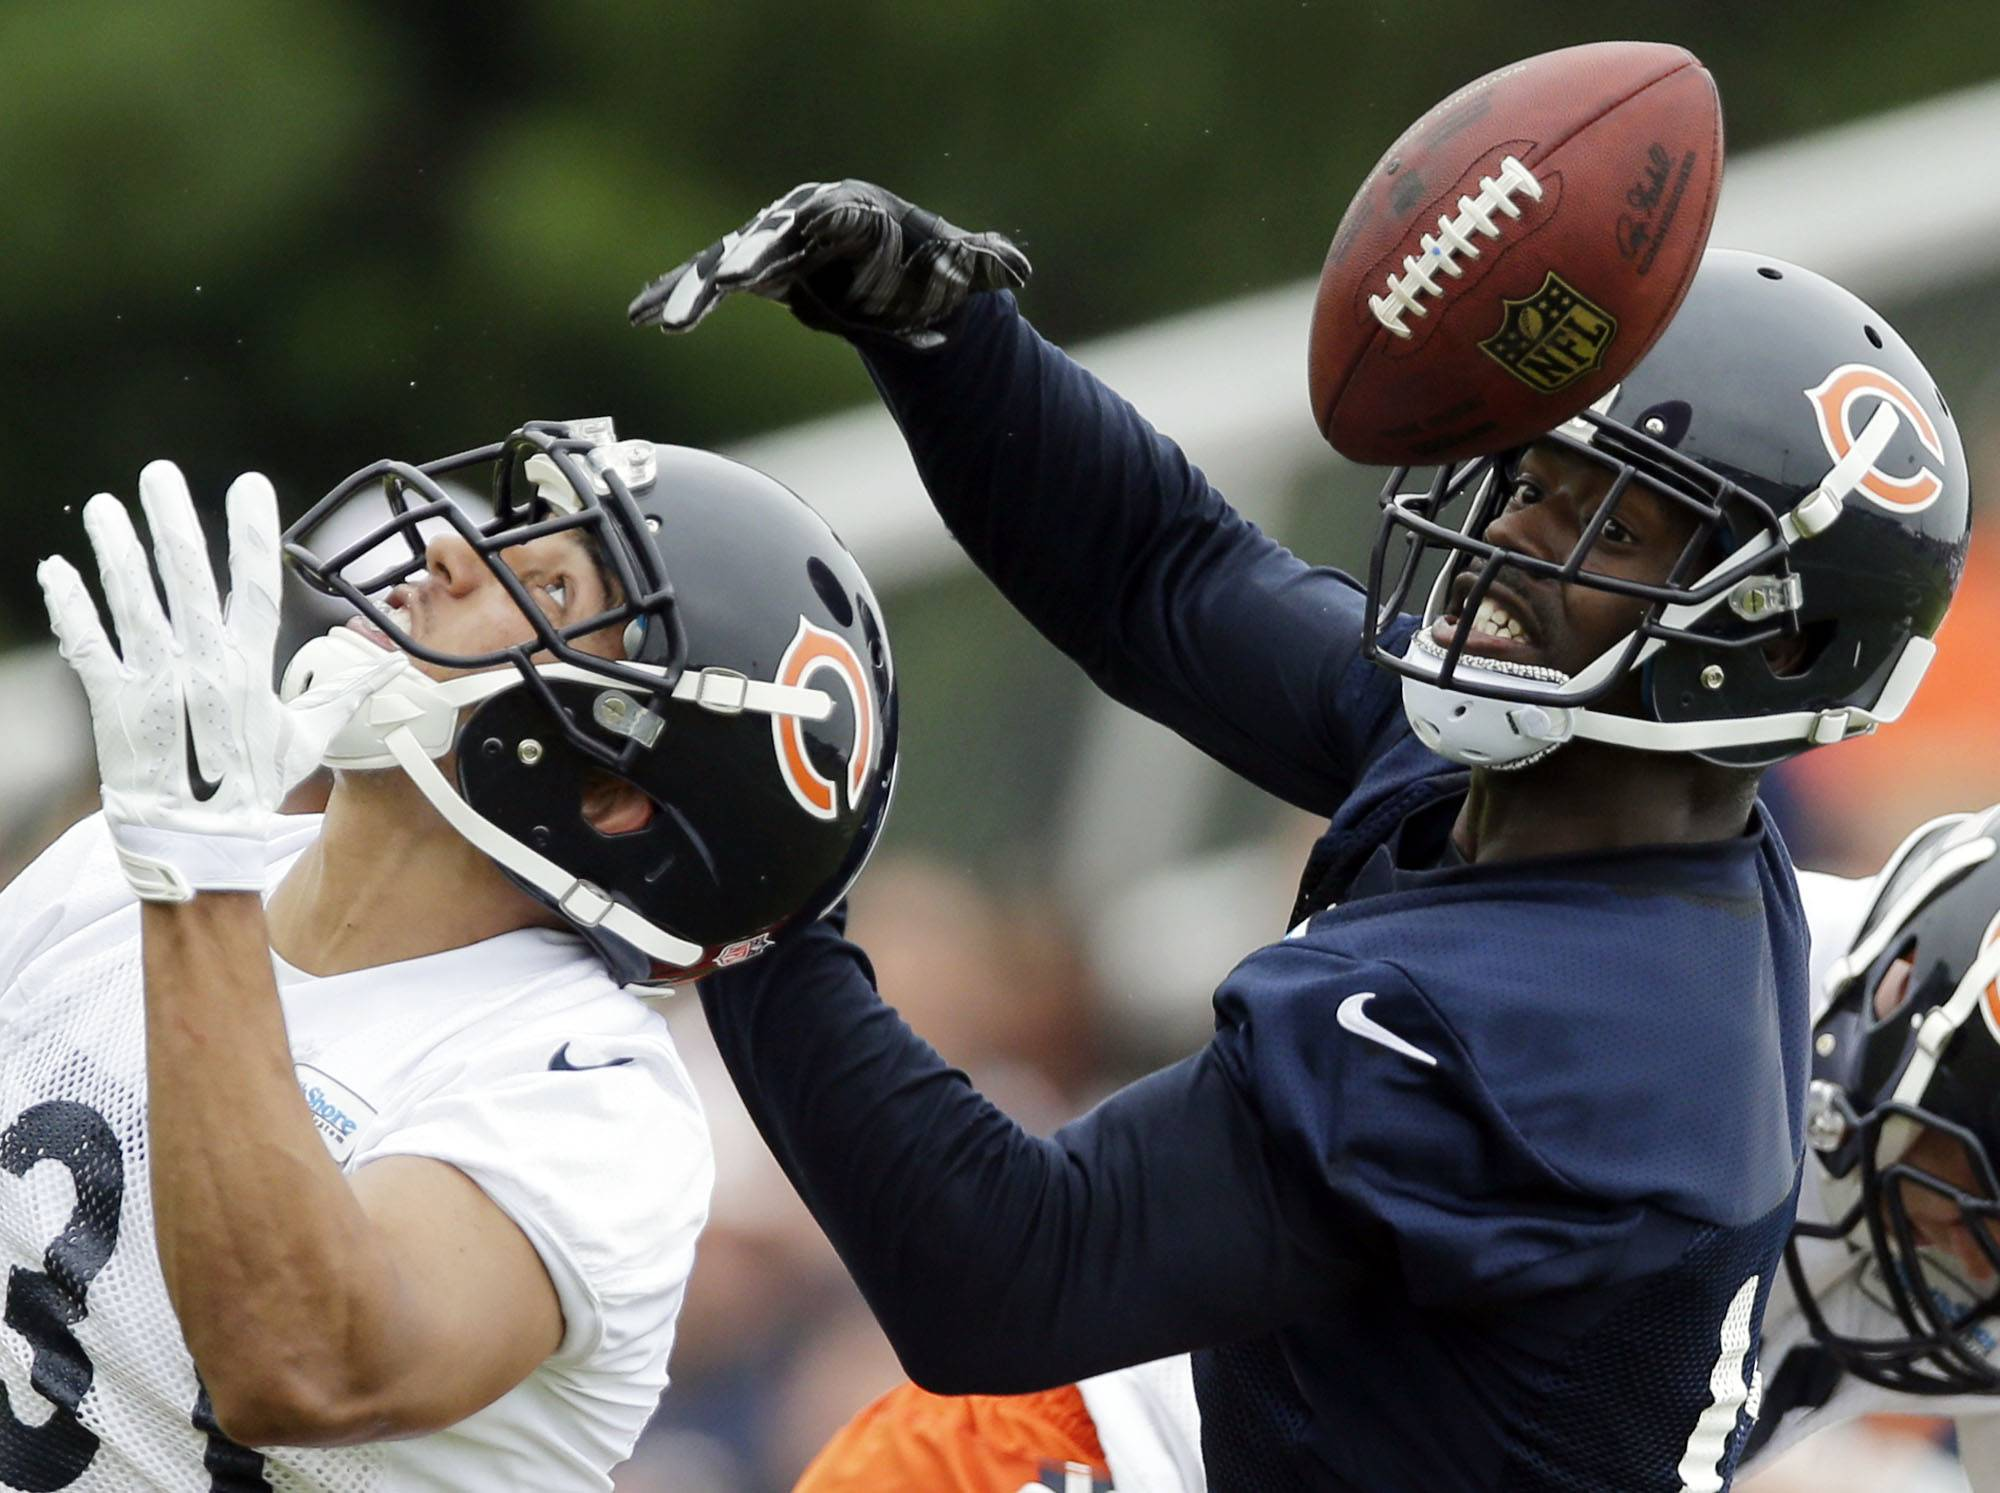 The Bears' Josh Morgan, right, has been thrust into the spotlight as a possible third receiver following the injury to Marquess Wilson